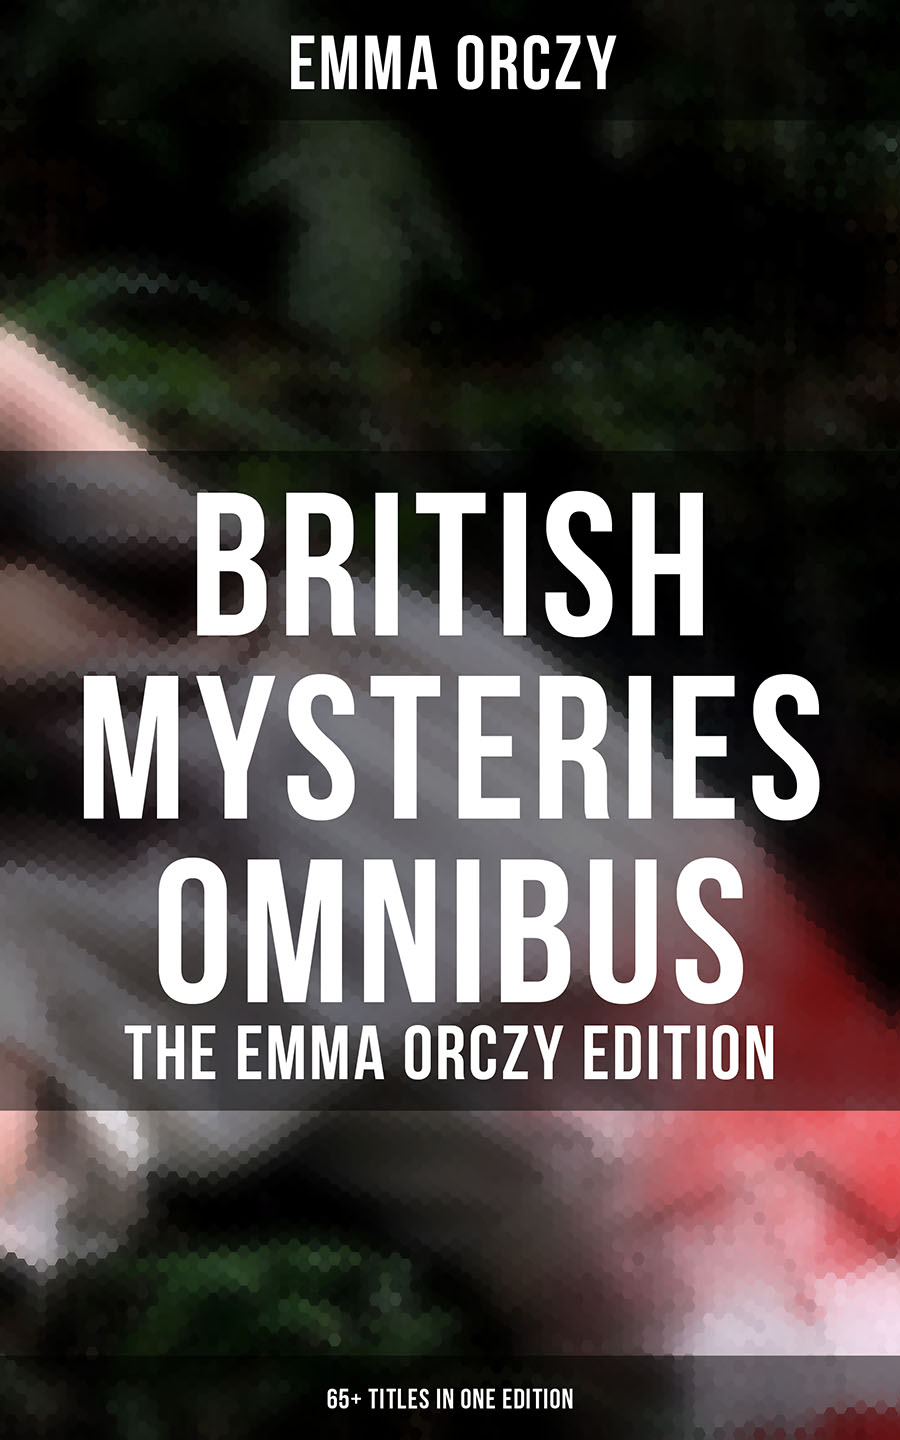 Emma Orczy British Mysteries Omnibus - The Emma Orczy Edition (65+ Titles in One Edition)